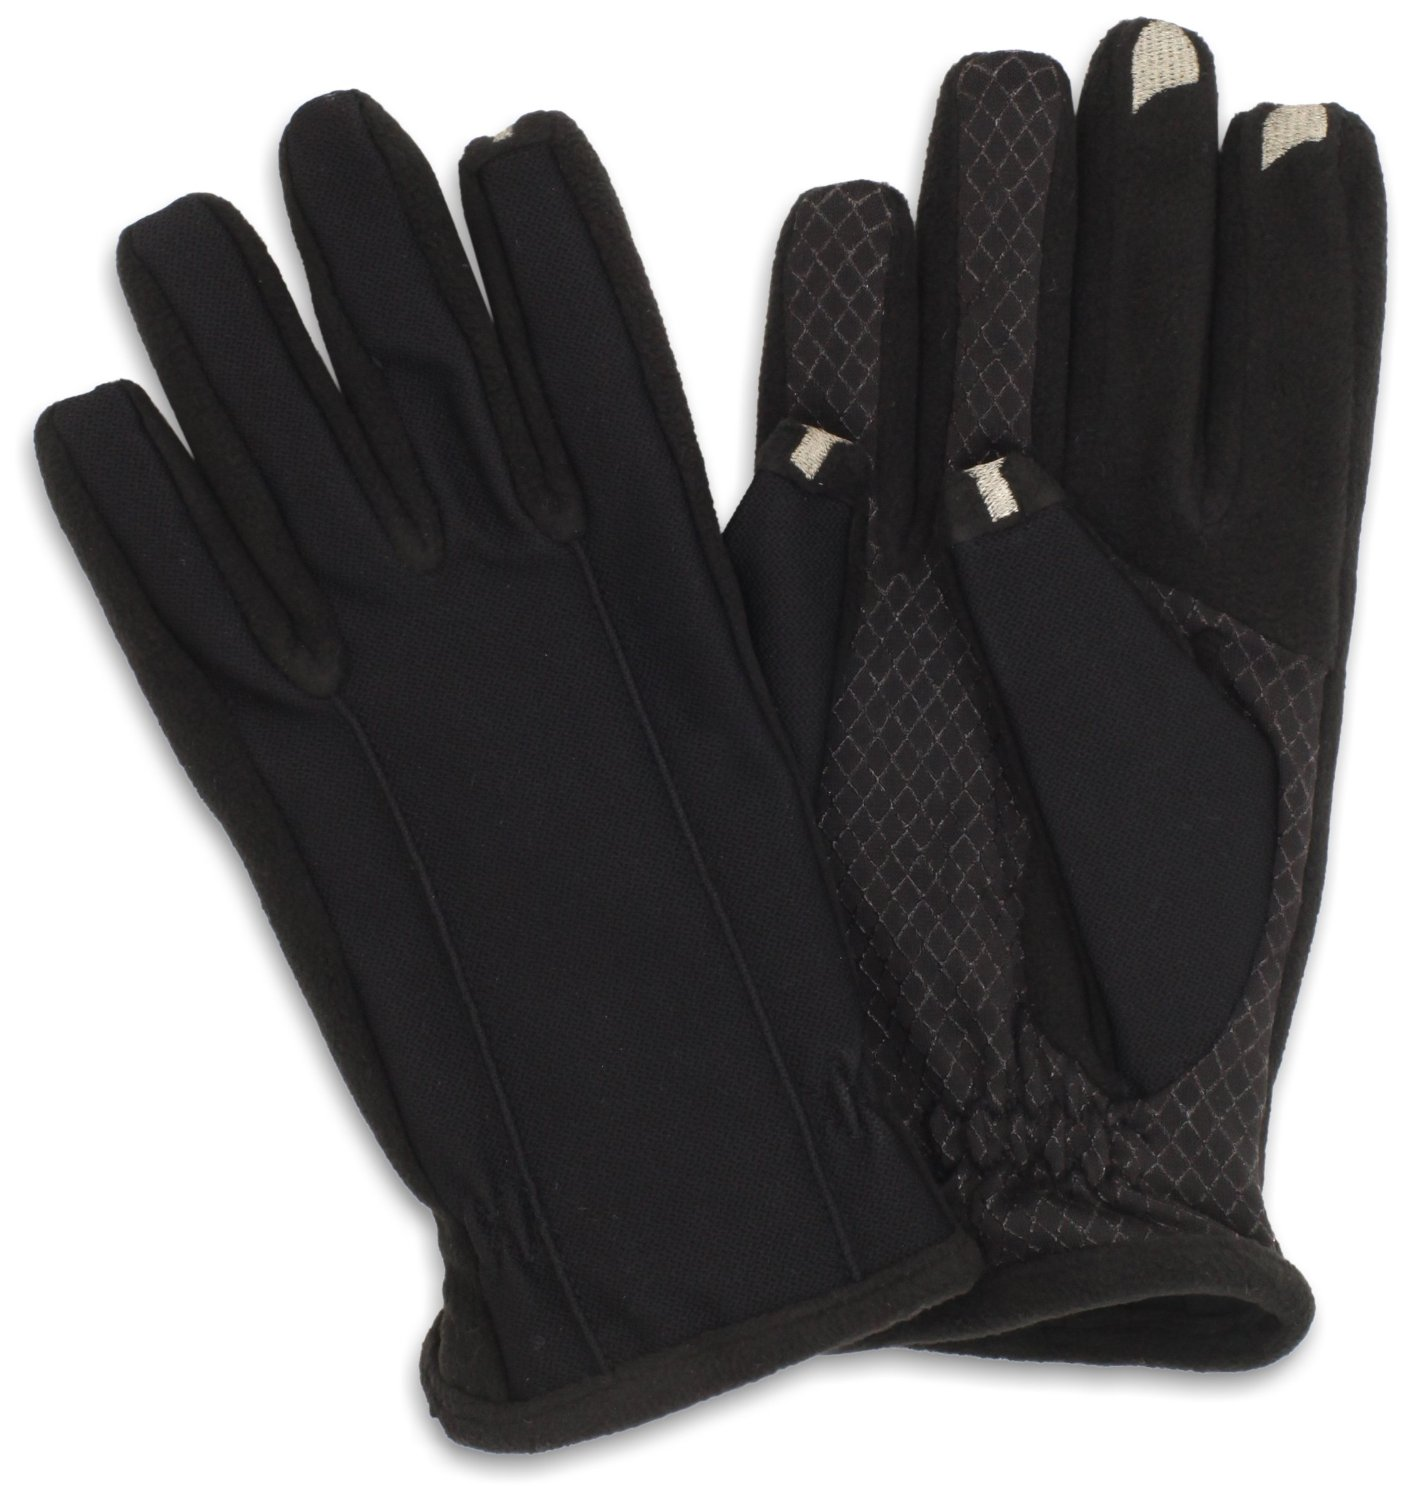 Mens gloves isotoner - Isotoner Men S Smartouch Tech Stretch Gloves